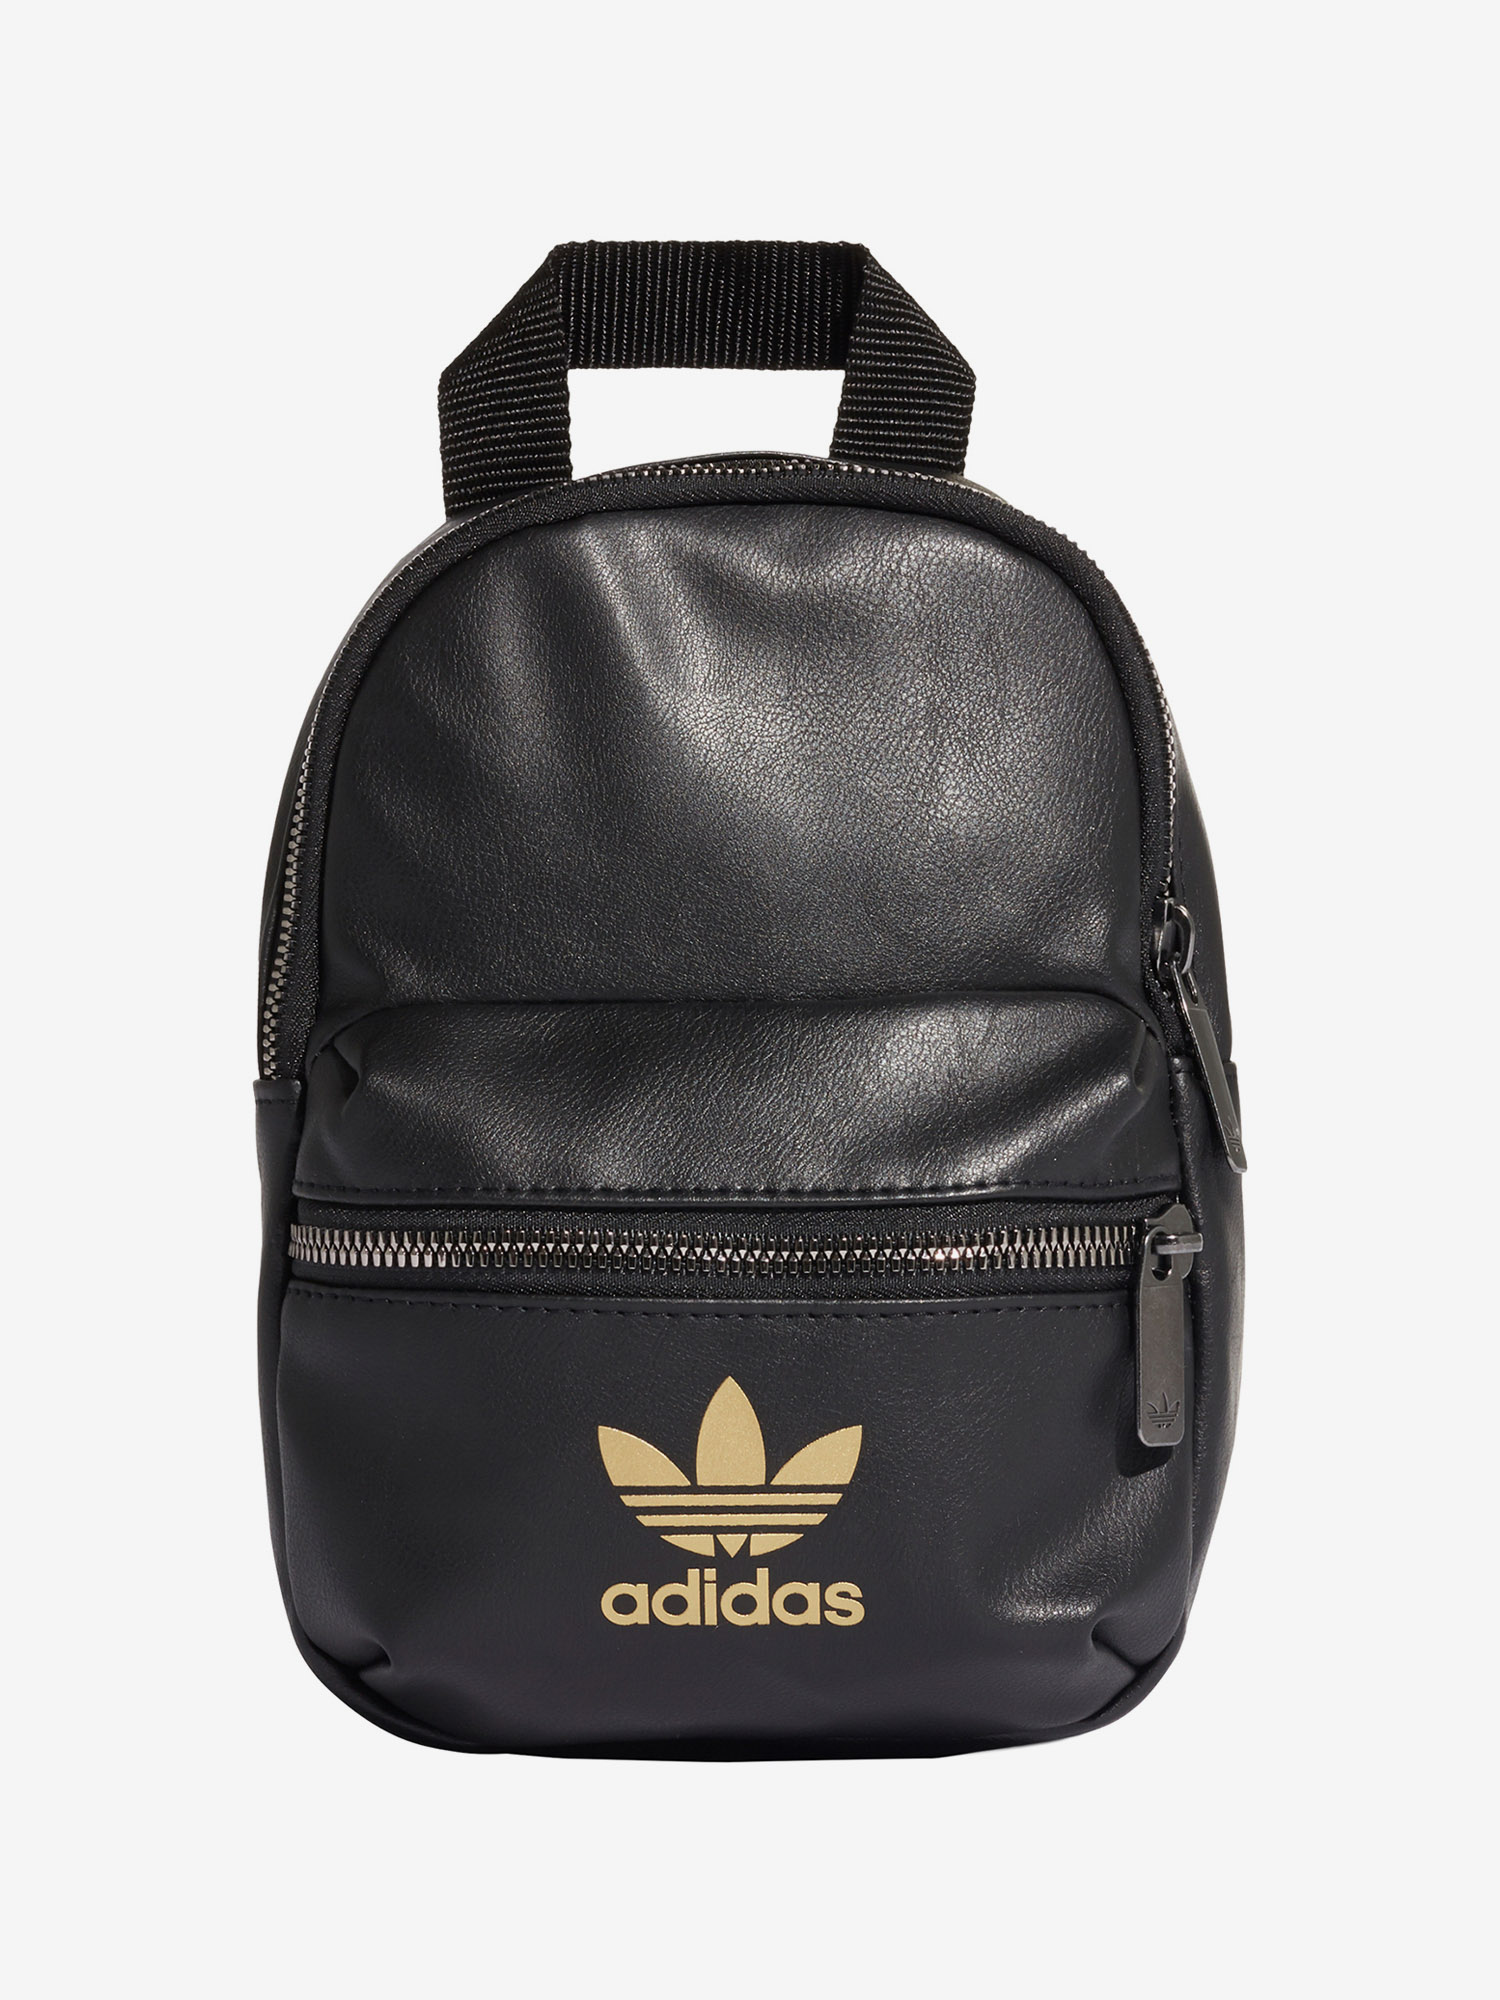 Batoh adidas Originals Bp Mini Pu (1)